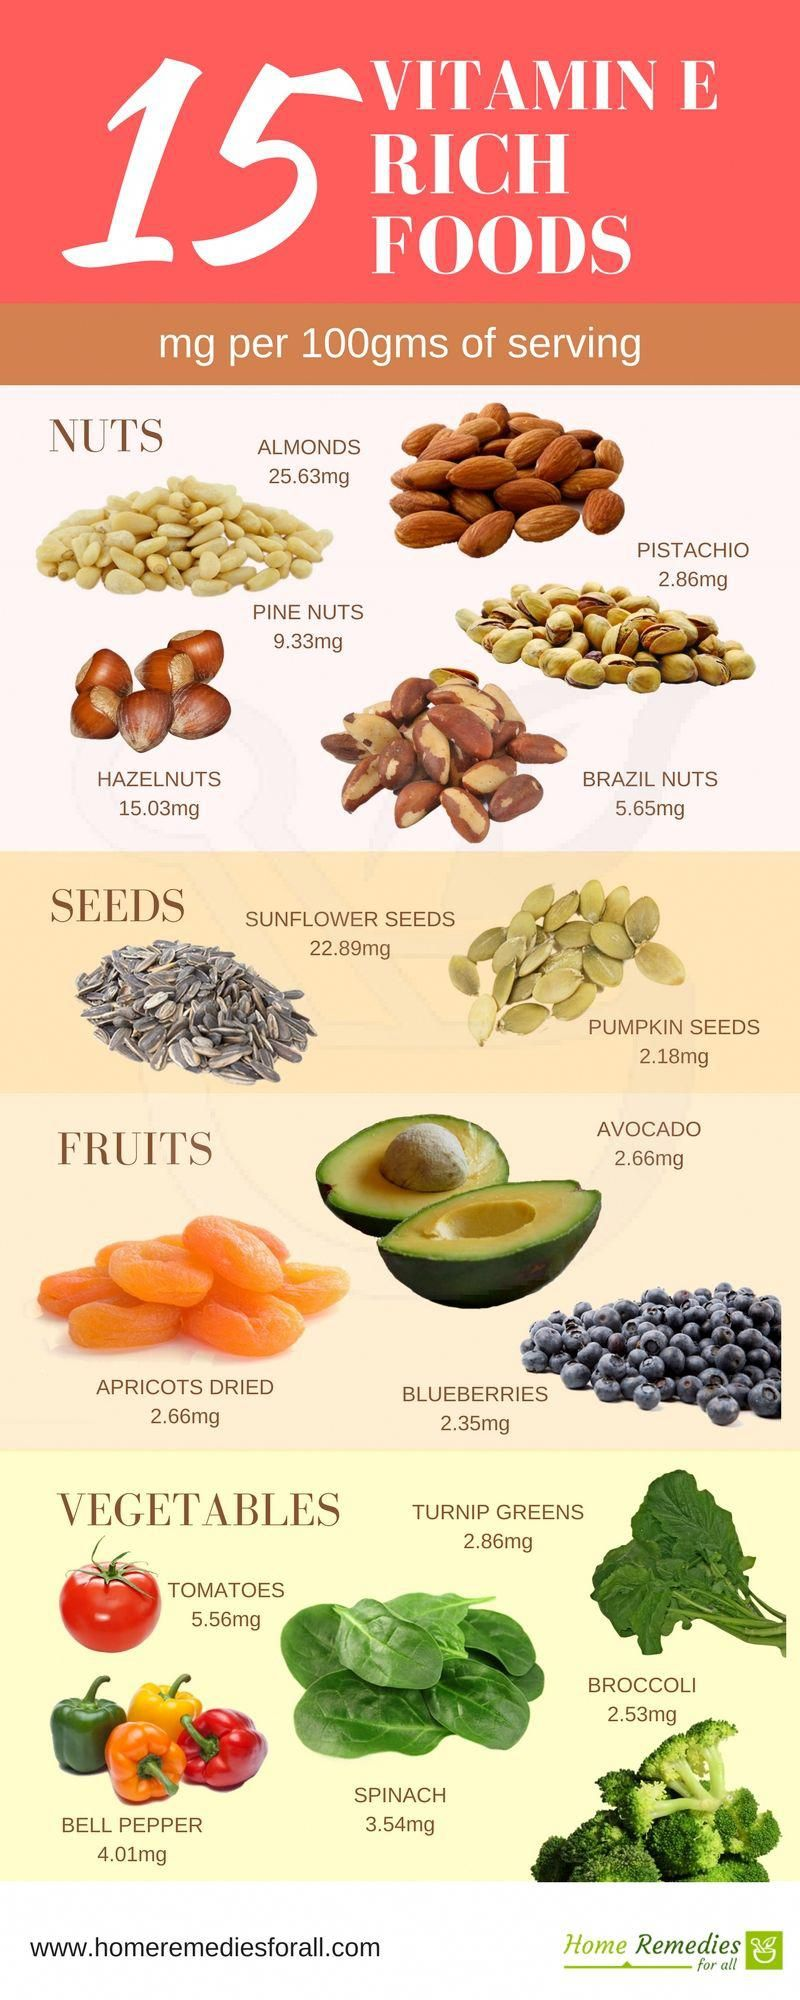 Consume These 15 Vitamin E Rich Foods To Get Rid Of Vitamin E